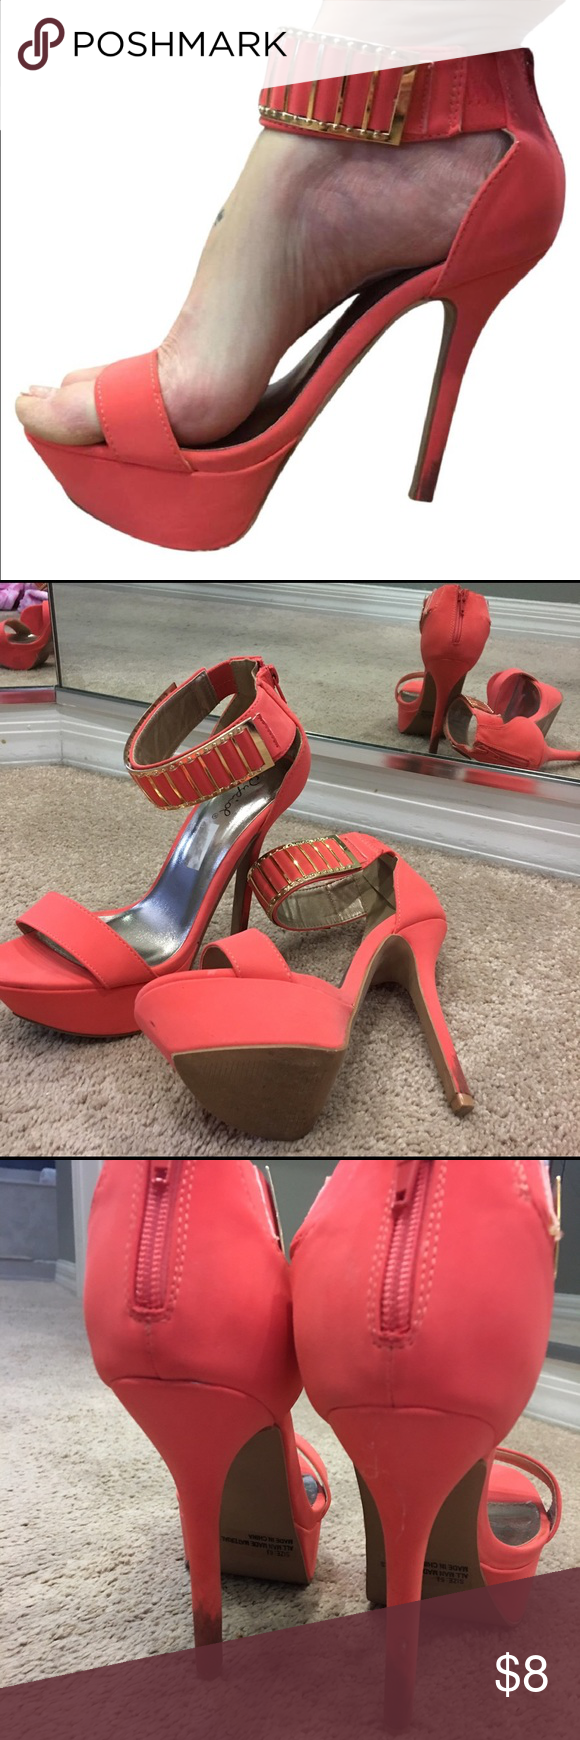 Coral & gold heels Size says 6.5, however I normally wear a 7.5-8, so these run a little big. They have some dirt on the heels-I've not tried to wash them. Otherwise good condition. They've been worn one time to a wedding. Shoes Heels